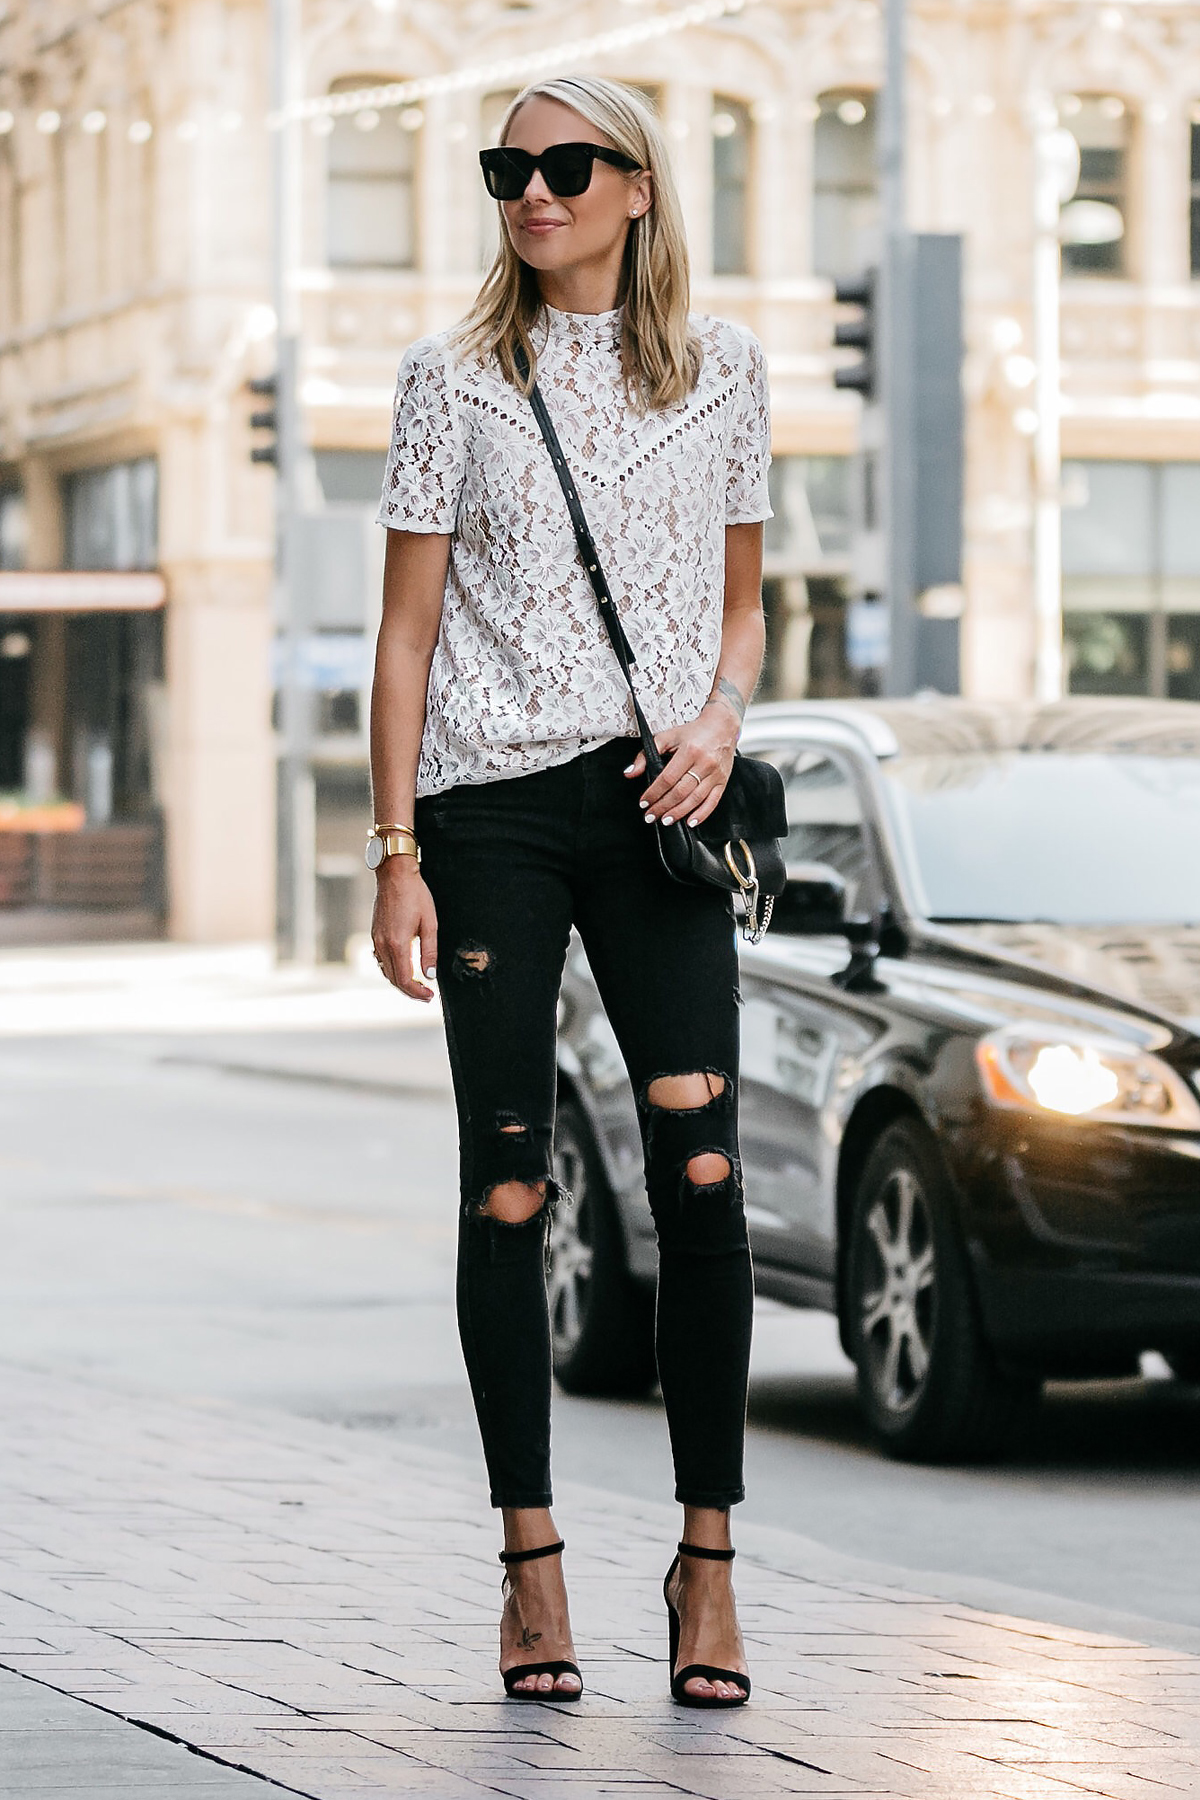 Blonde Woman Wearing Nordstrom Anniversary Sale White Lace Top Zara Black Ripped Skinny Jeans Outfit Black Ankle Strap Heeled Sandals Chloe Faye Handbag Fashion Jackson Dallas Blogger Fashion Blogger